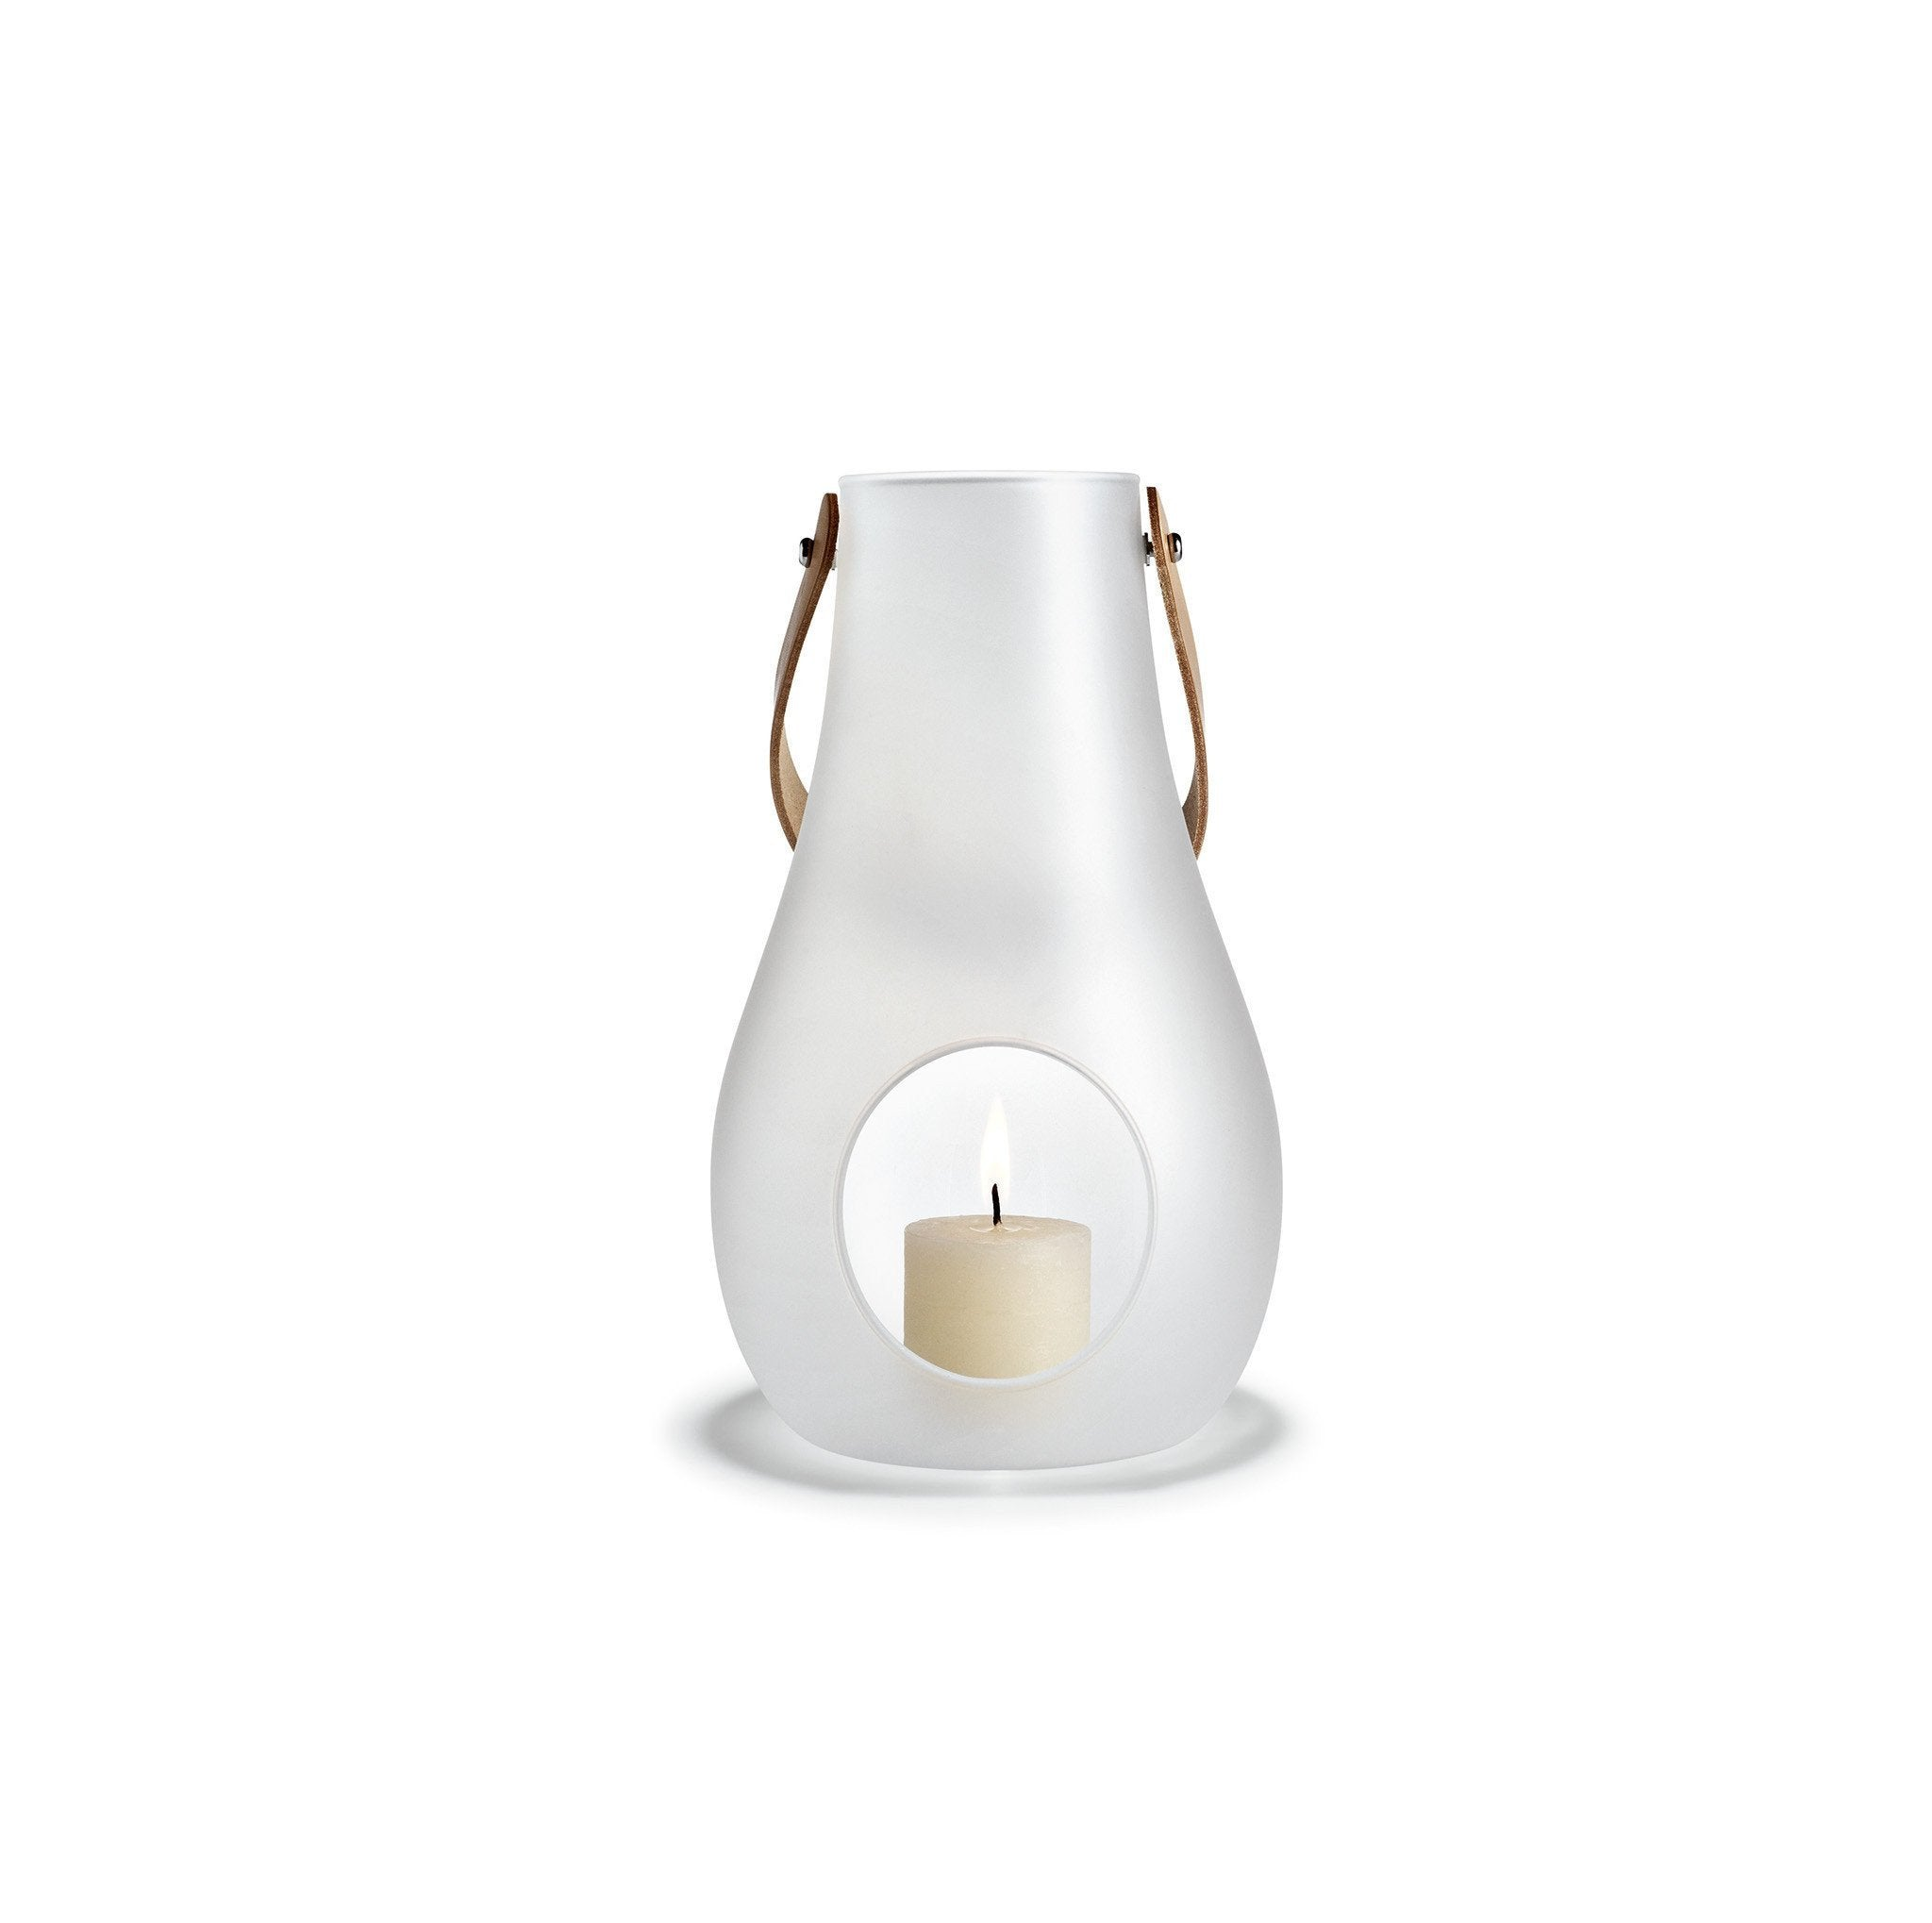 "Design with Light Frosted Lantern, 9.8"" 24cm"